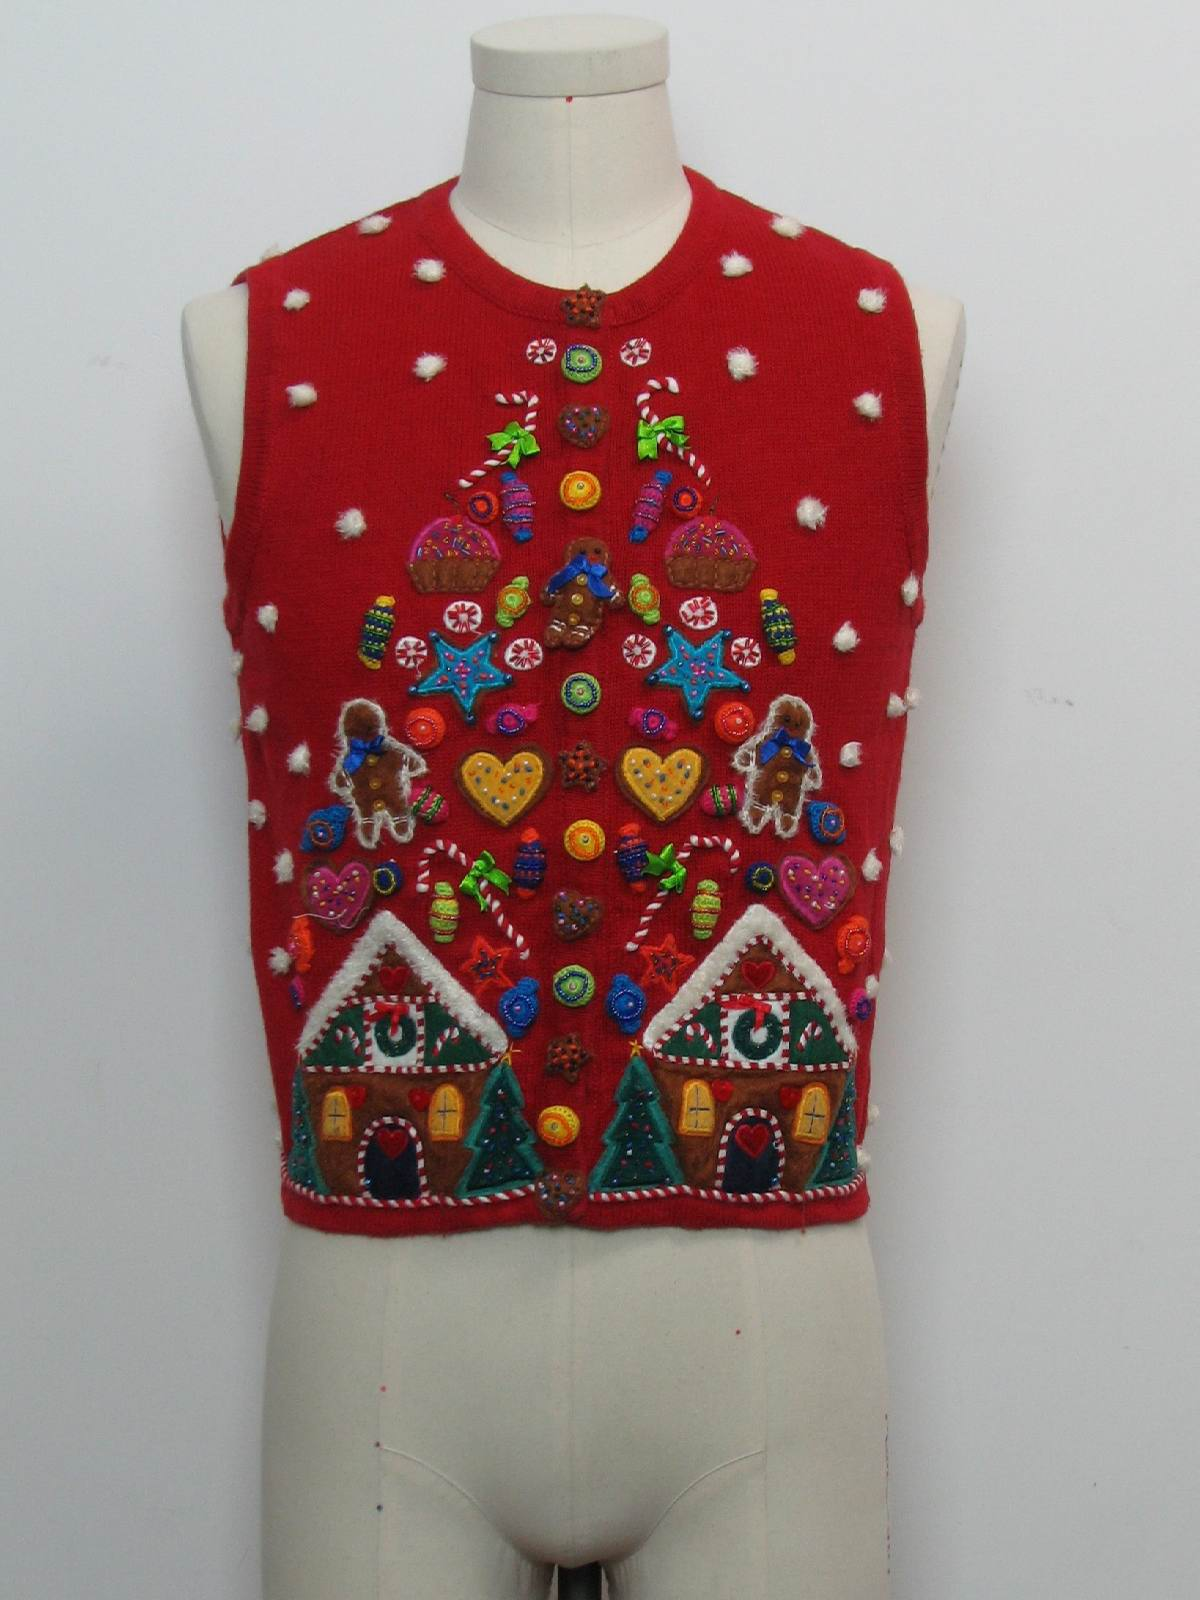 Marisa Christina Womens Ugly Christmas Sweater Vest $34.00 Not in stock. Item No. 270511